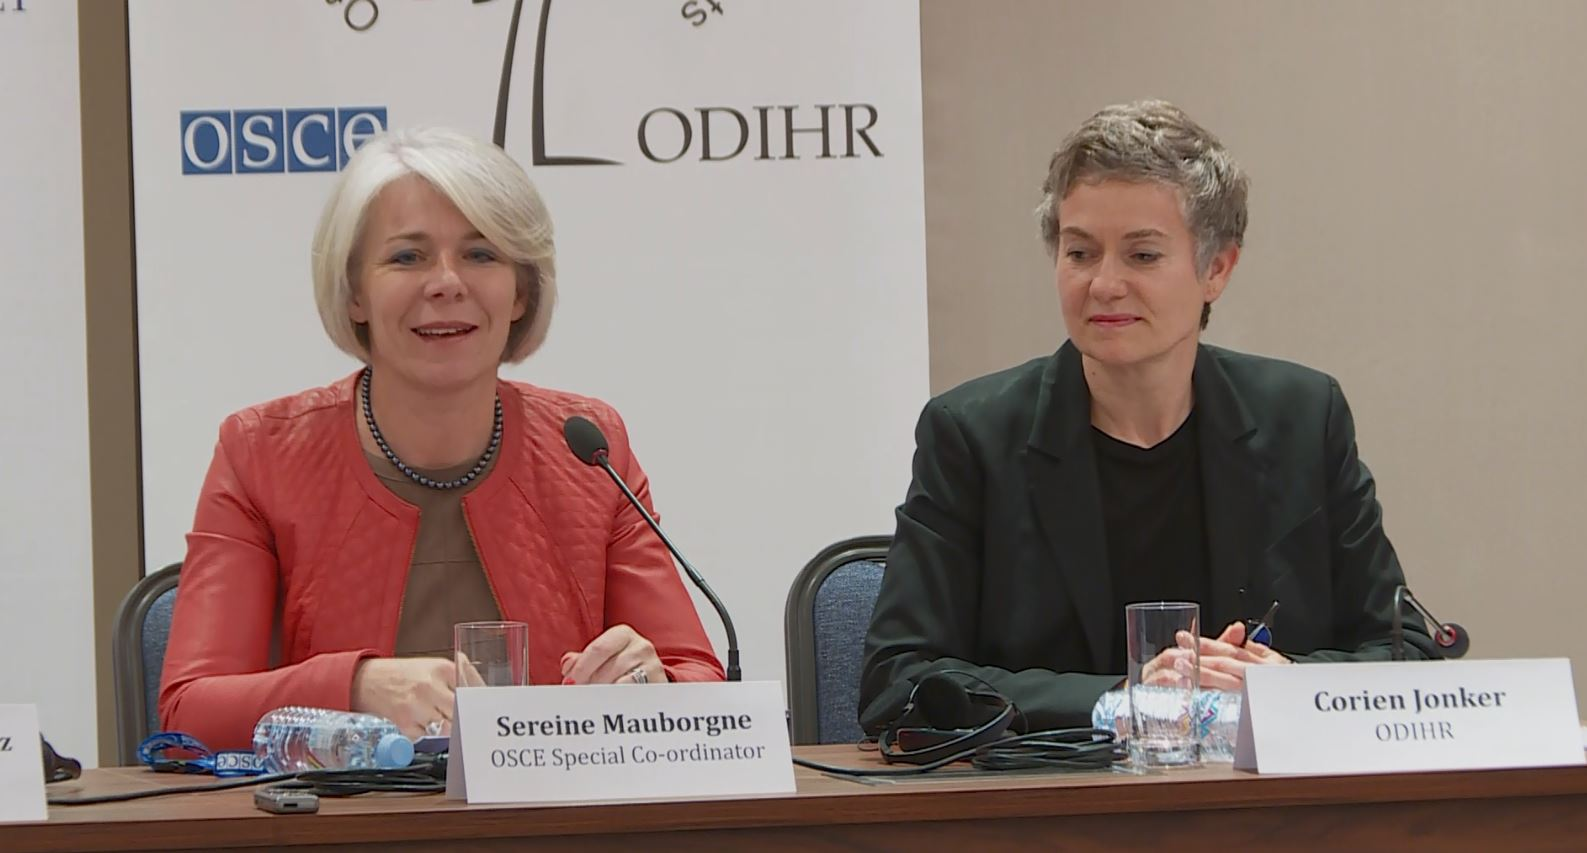 Elections in North Macedonia were quiet and democratic, says OSCE-ODIHR